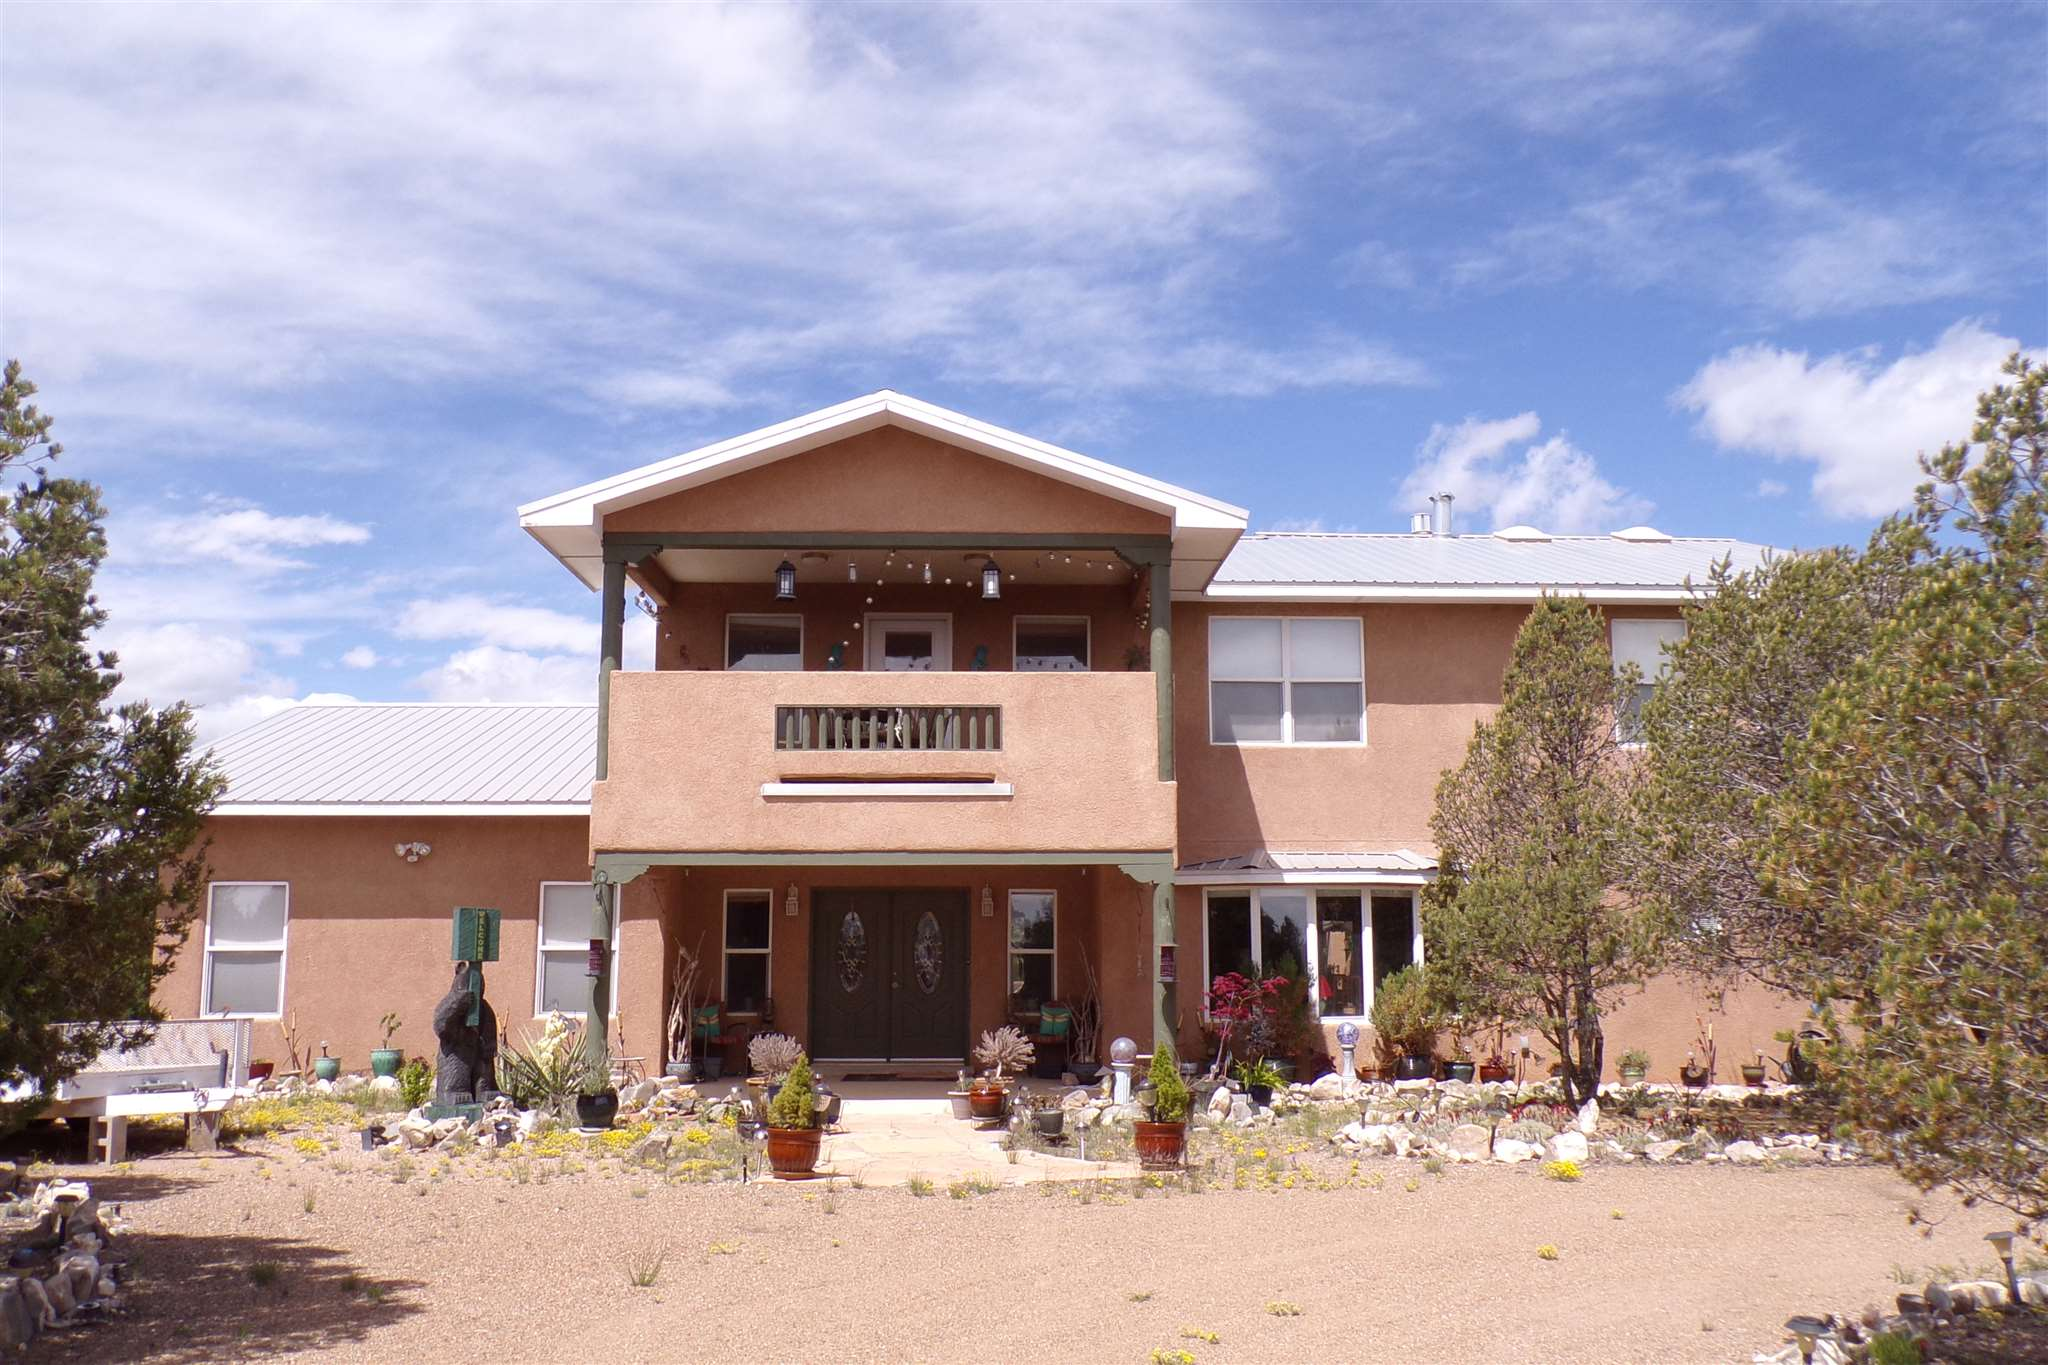 This Edgewood, NM home has 2970 sf of heated space and 3395 sf under roof. The home sits on 2.25 acres and is located just 30 minutes from Albuquerque making this an easy commute to the city via the I40 corridor. Santa Fe is about an hour's drive for awesome food, fun, culture and art. The home is 3 bedrooms with a study that could easily serve as 4th bedroom. The master suite is spacious with a large walk-in closet. Bedrooms 2 and 3 are upstairs separated by a Jack & Jill bath. The upstairs loft could be used as office space or a second living area. The balcony offers a lovely view of the Estancia Valley. The kitchen features top-of-the-line appliances, island, eating bar and walk-in pantry. The backyard is built forentertaining with an open and covered patio with well maintained landscaping. Horses are allowed in Rancho Sandia Subdivision and the acreage offers plenty of space to build a nice equine area. Come out to the East Mountains where the living is easy and spacious.